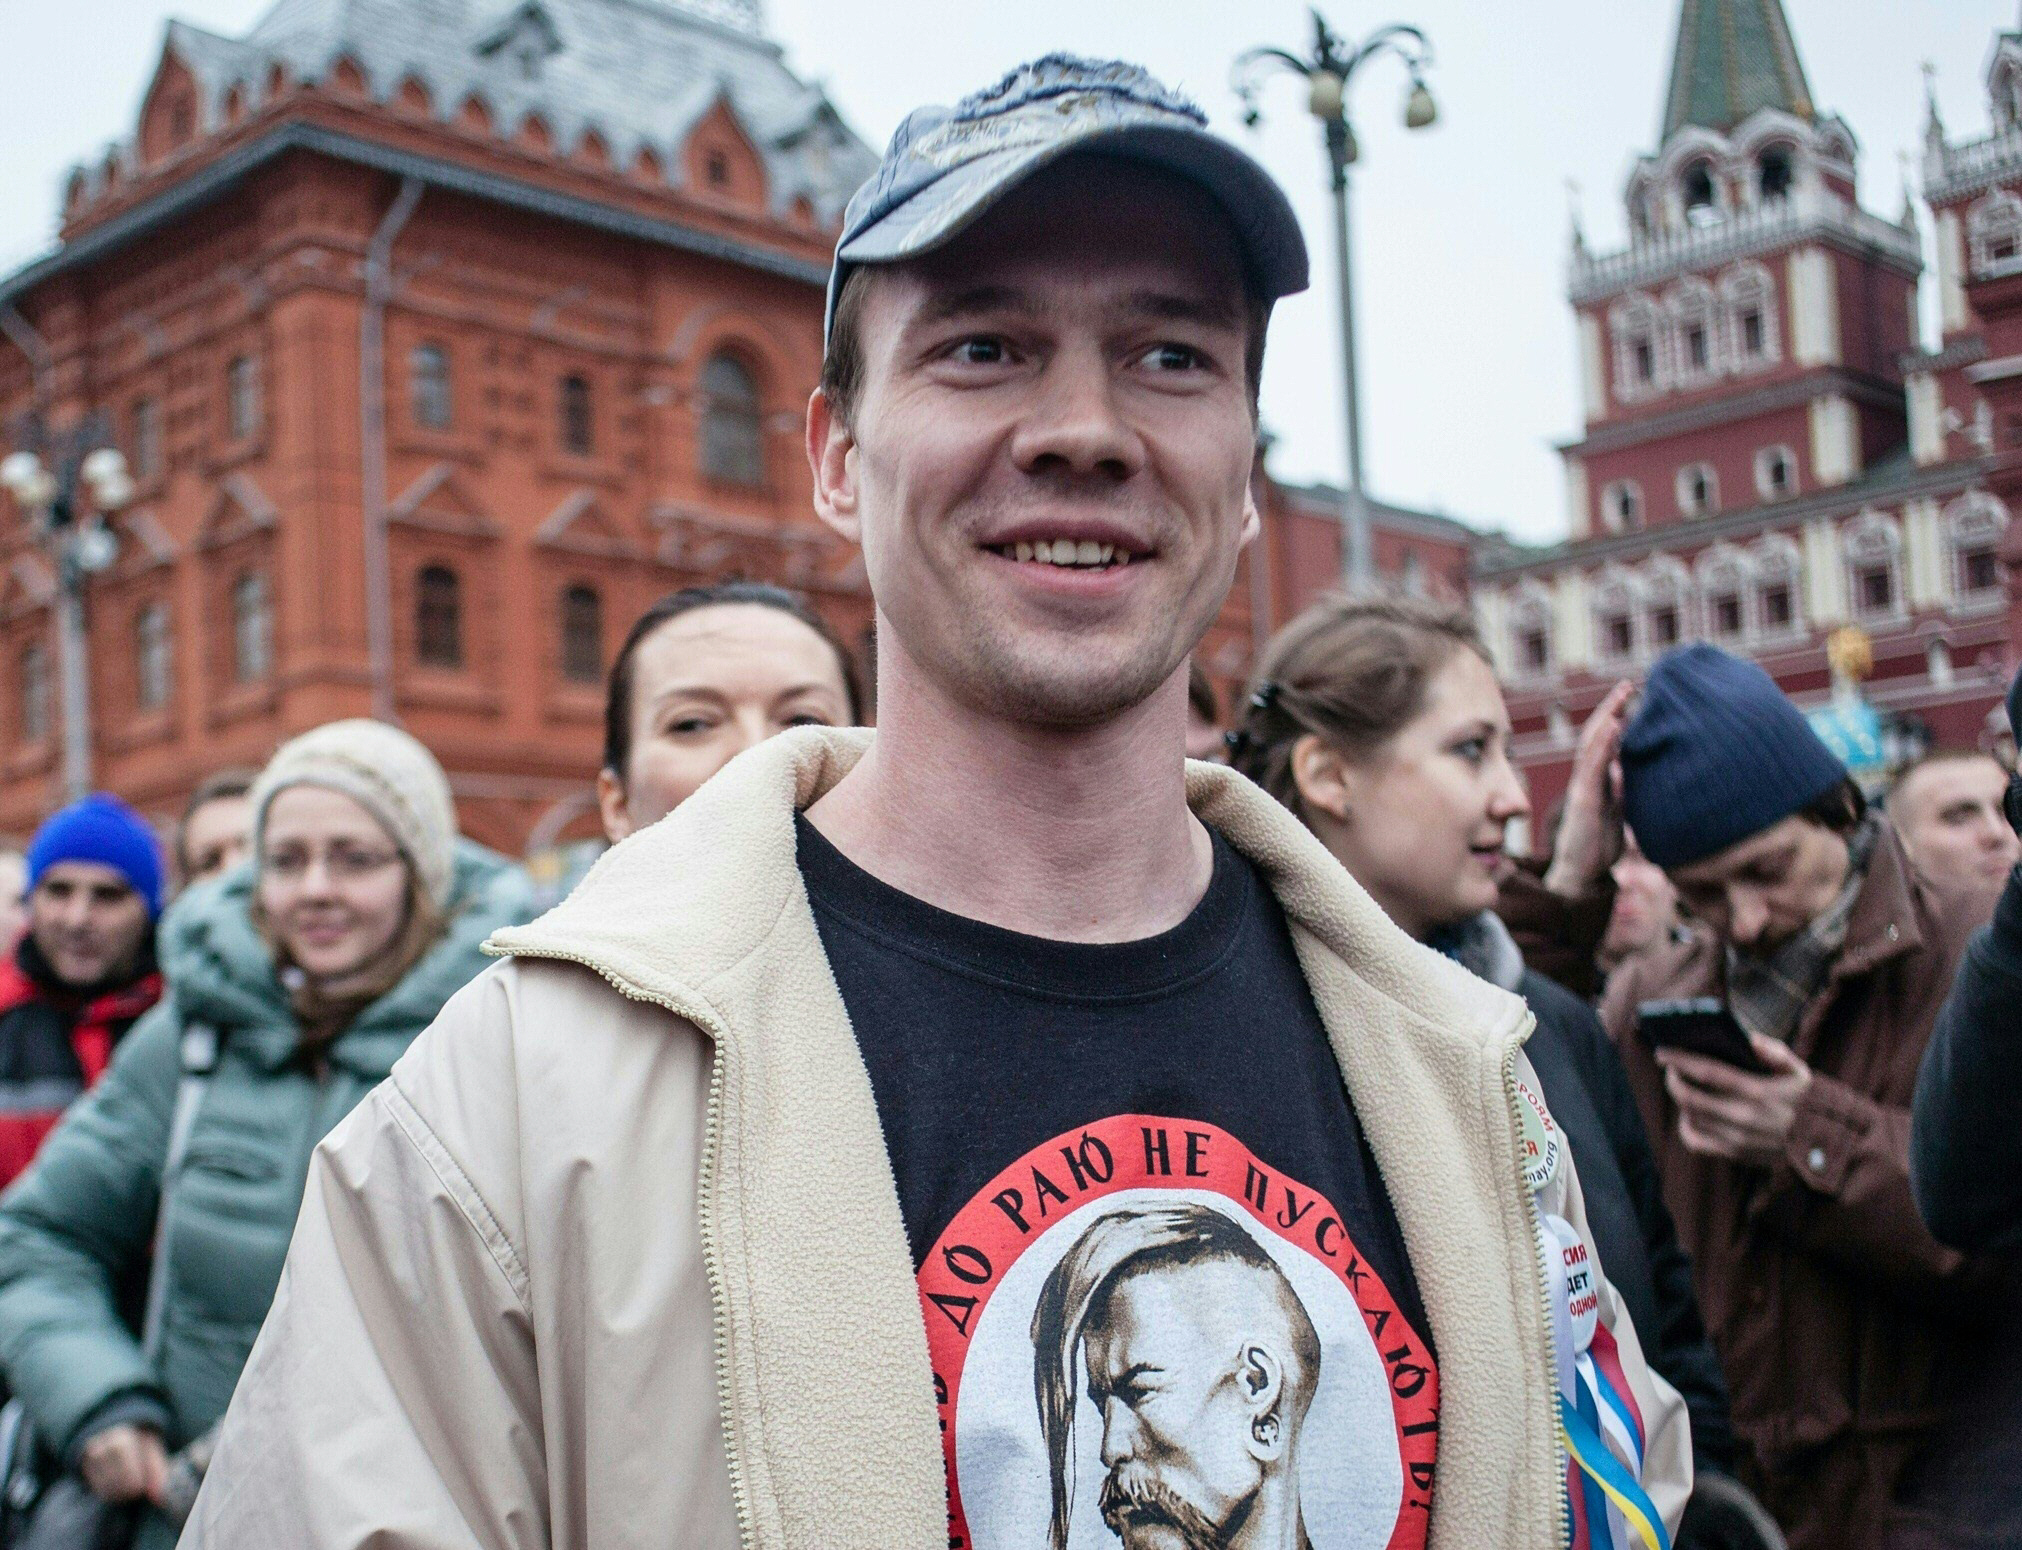 russian opposition activist leaves jail after court scrapped conviction